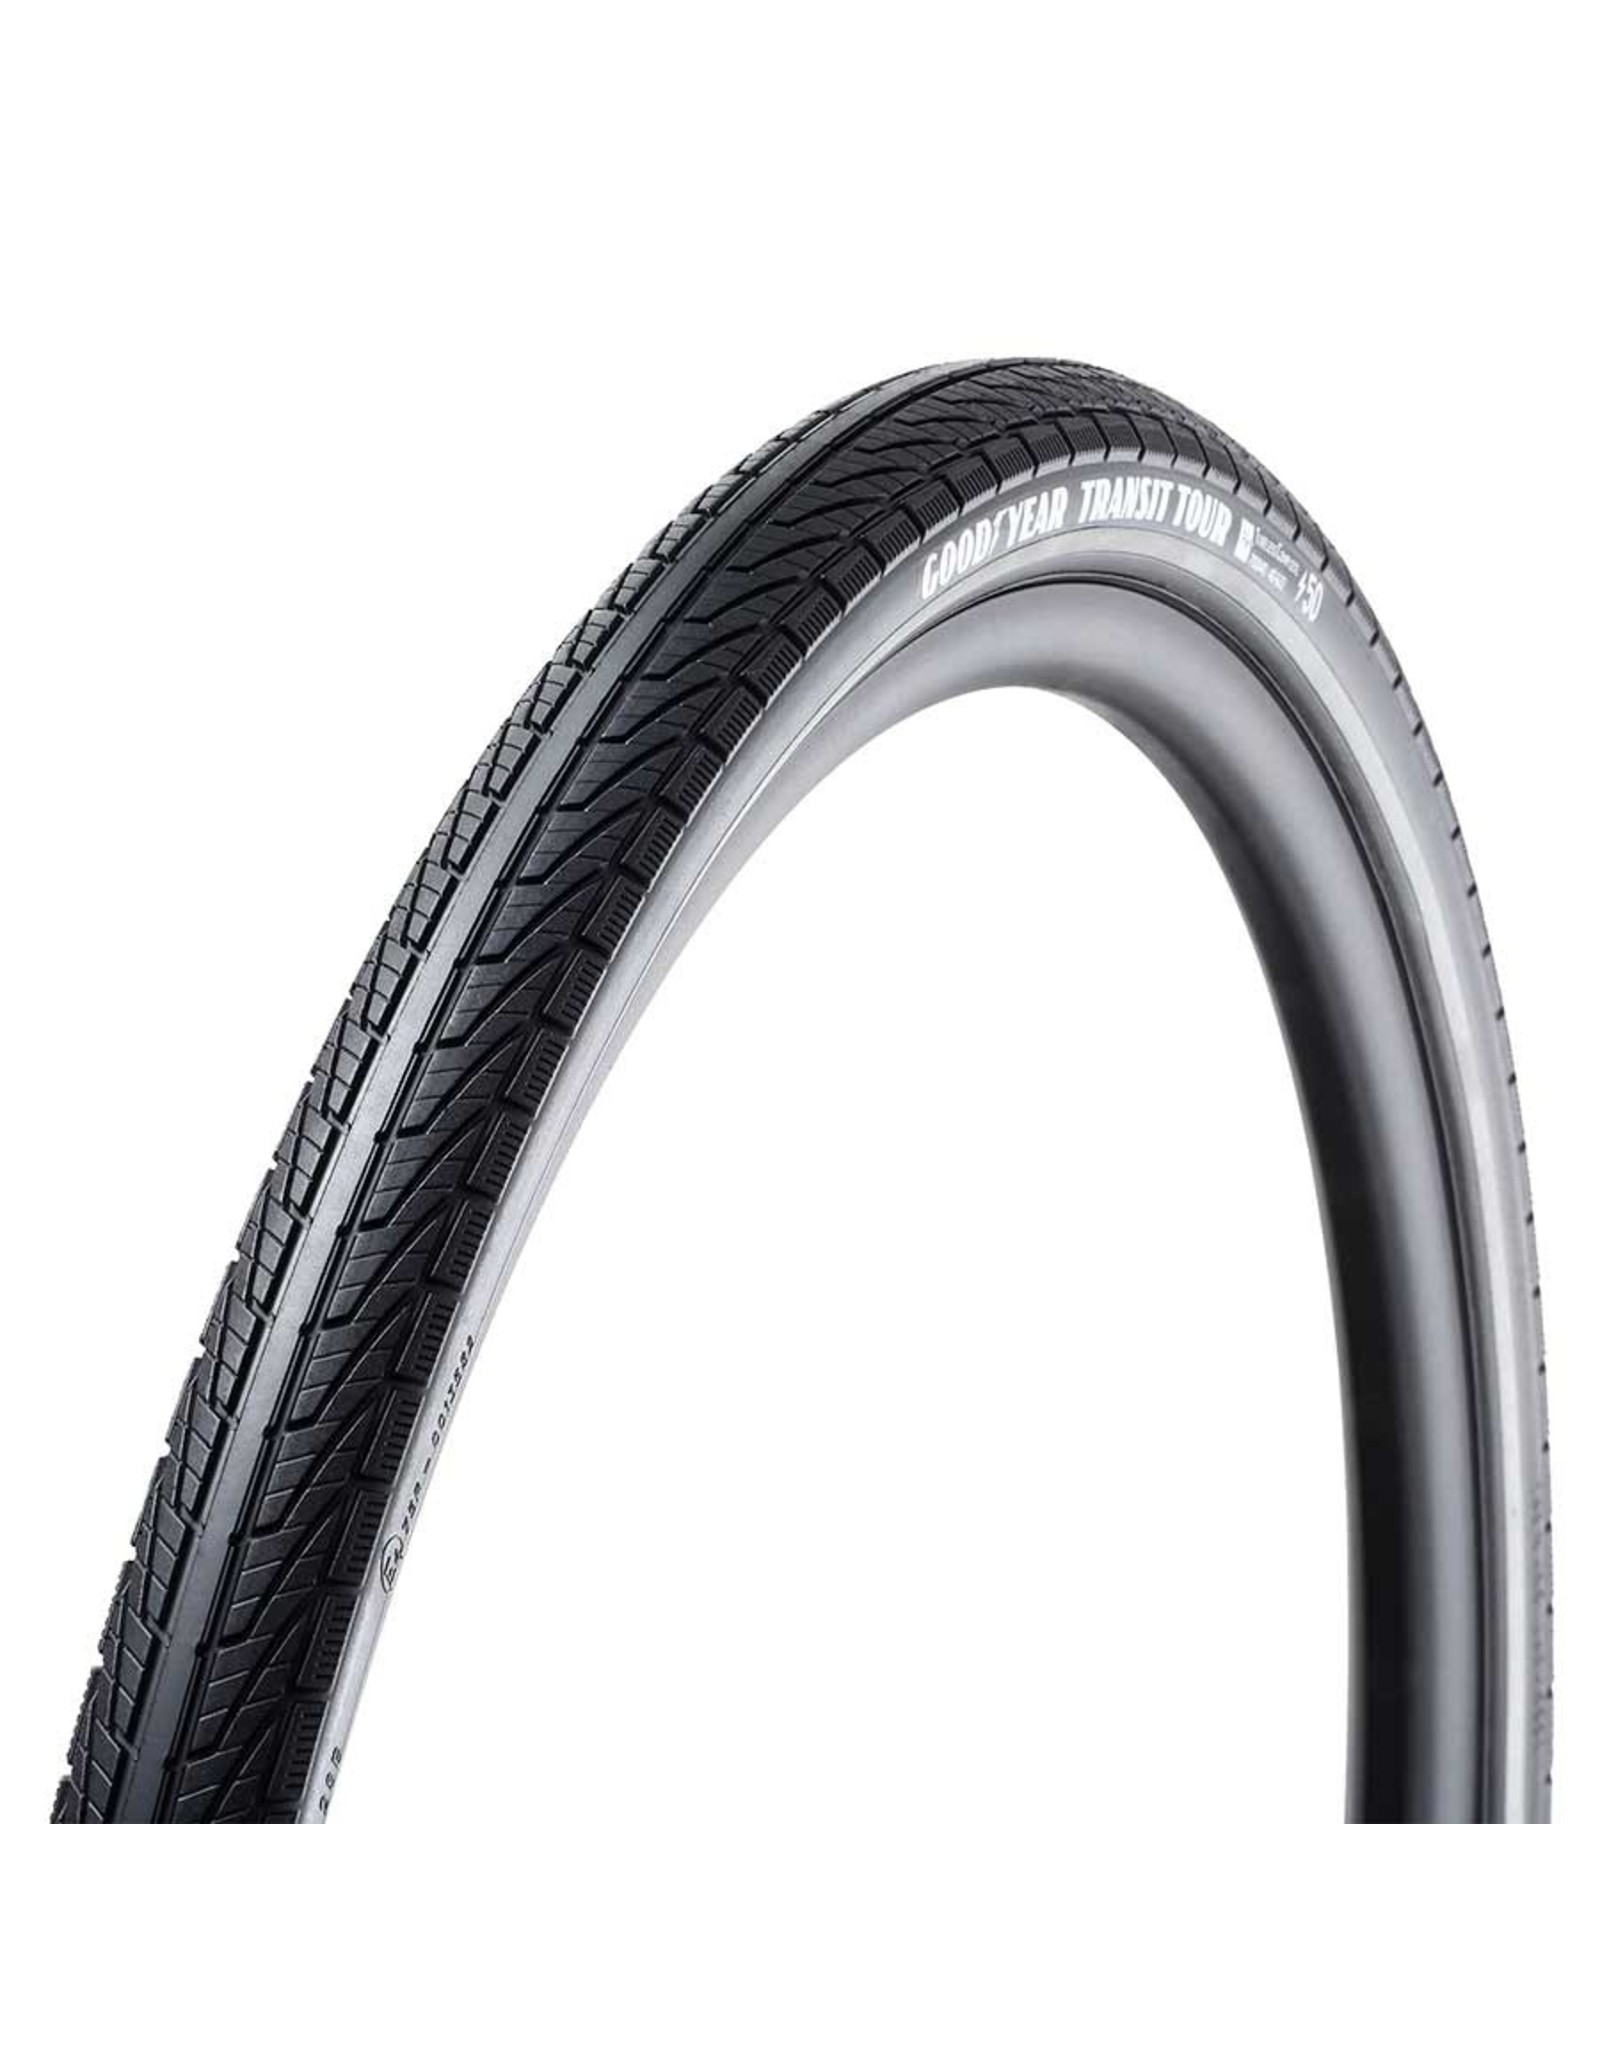 Goodyear Goodyear, Transit Tour, Tire, 700x35C, Wire, Clincher, Dynamic:Silica4, S3: Shell, 60TPI, Black